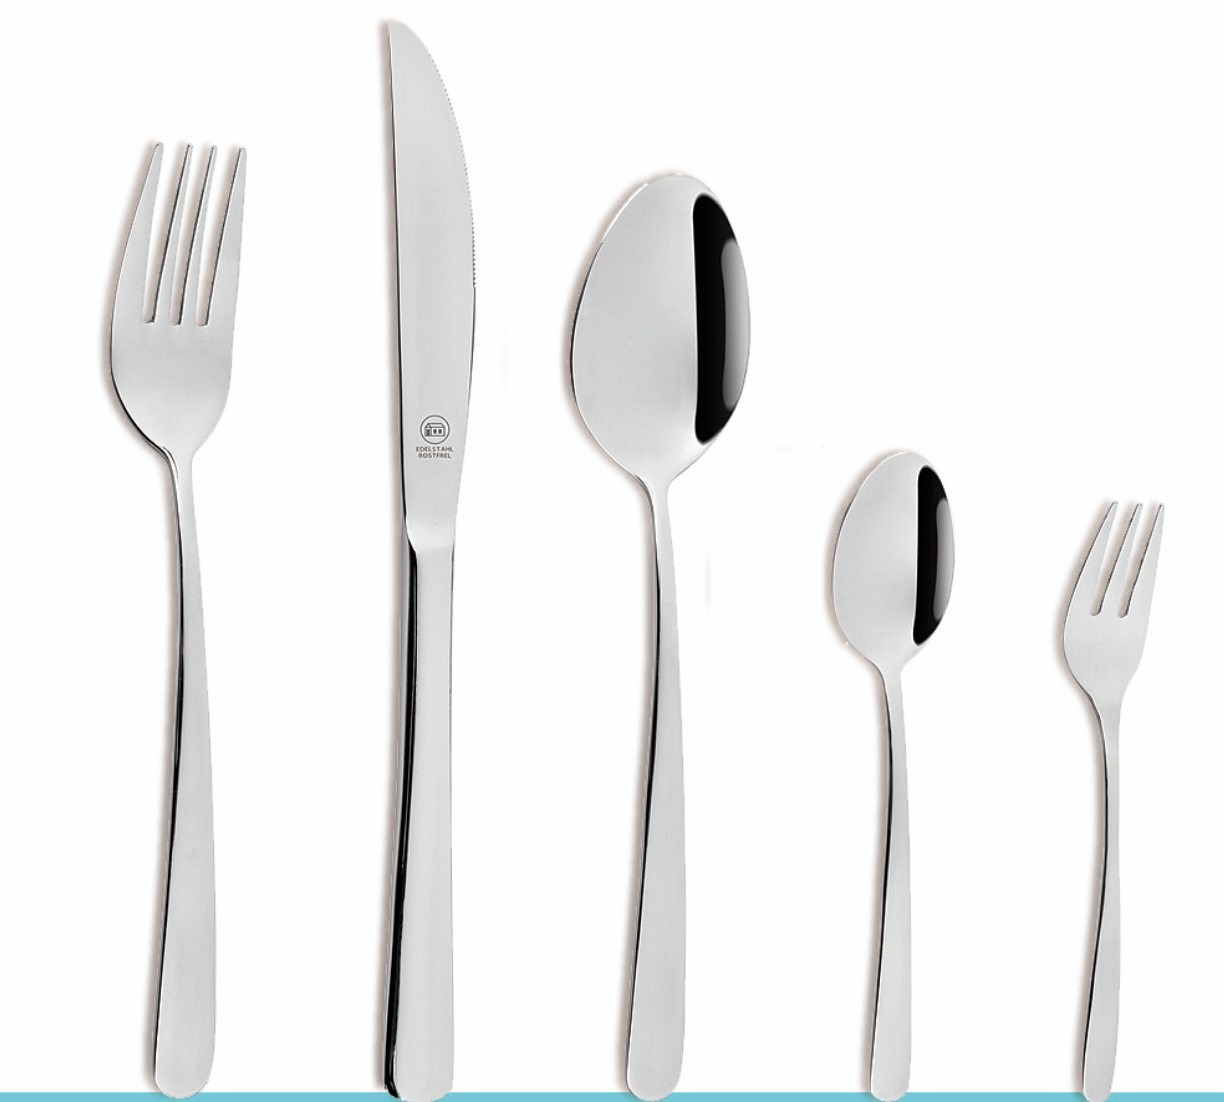 Edlon 30pc Cutlery Sets S/S